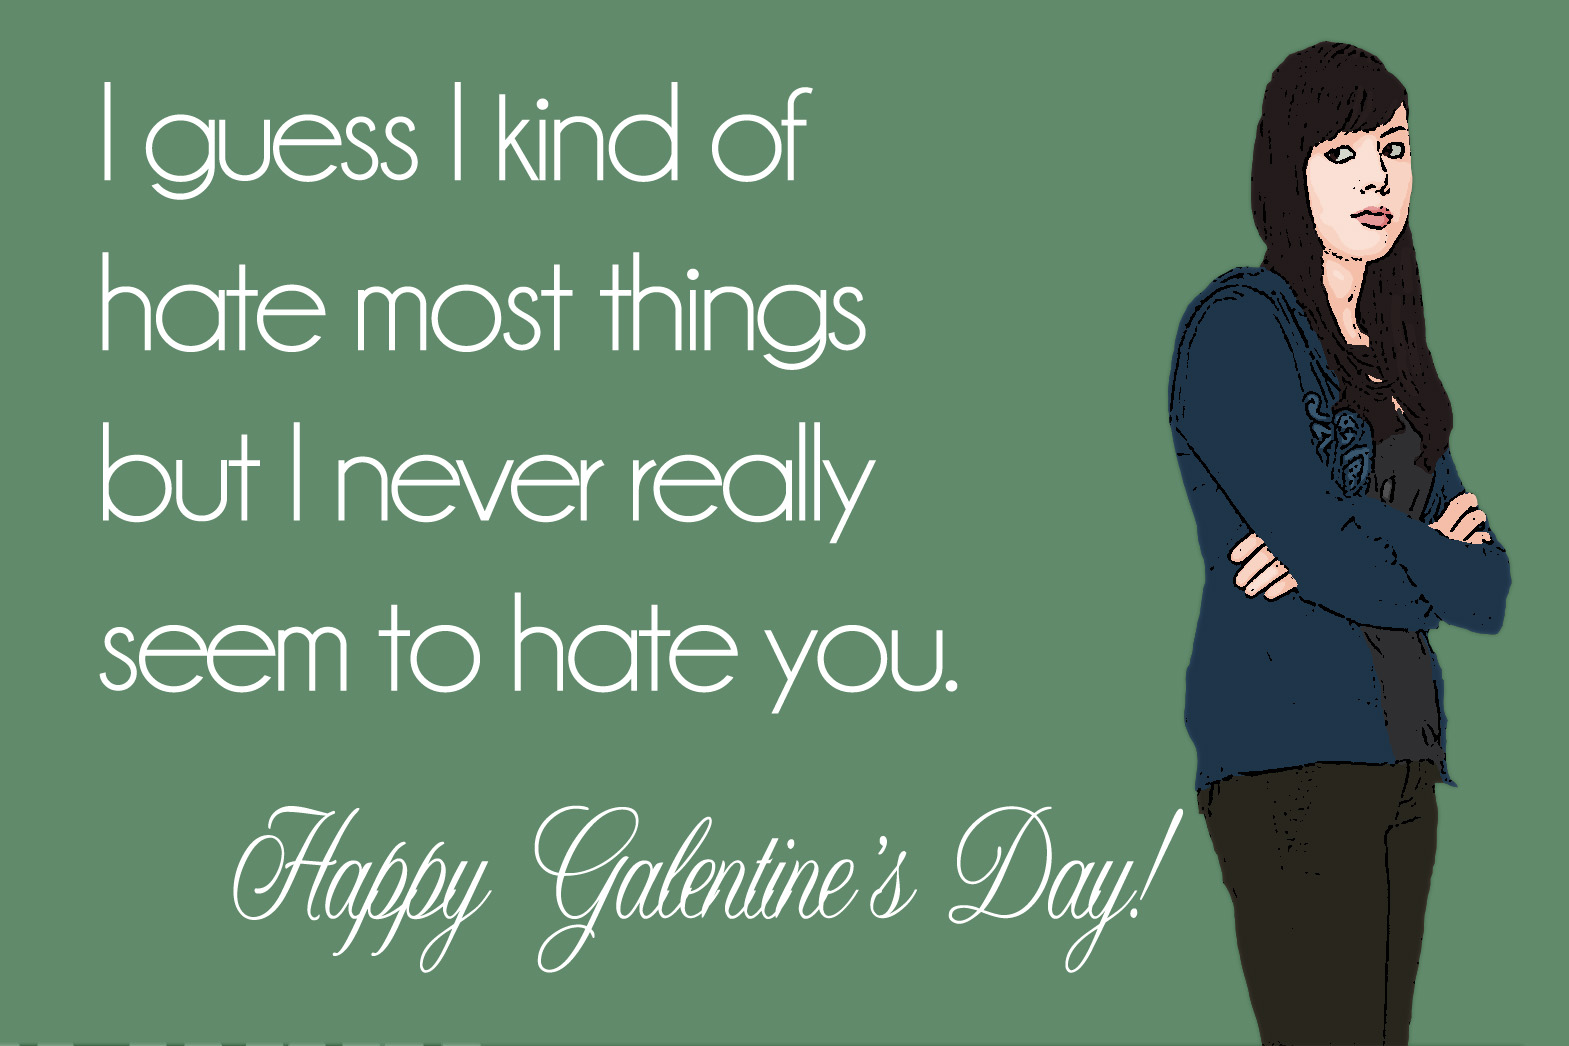 galentine's day - photo #10